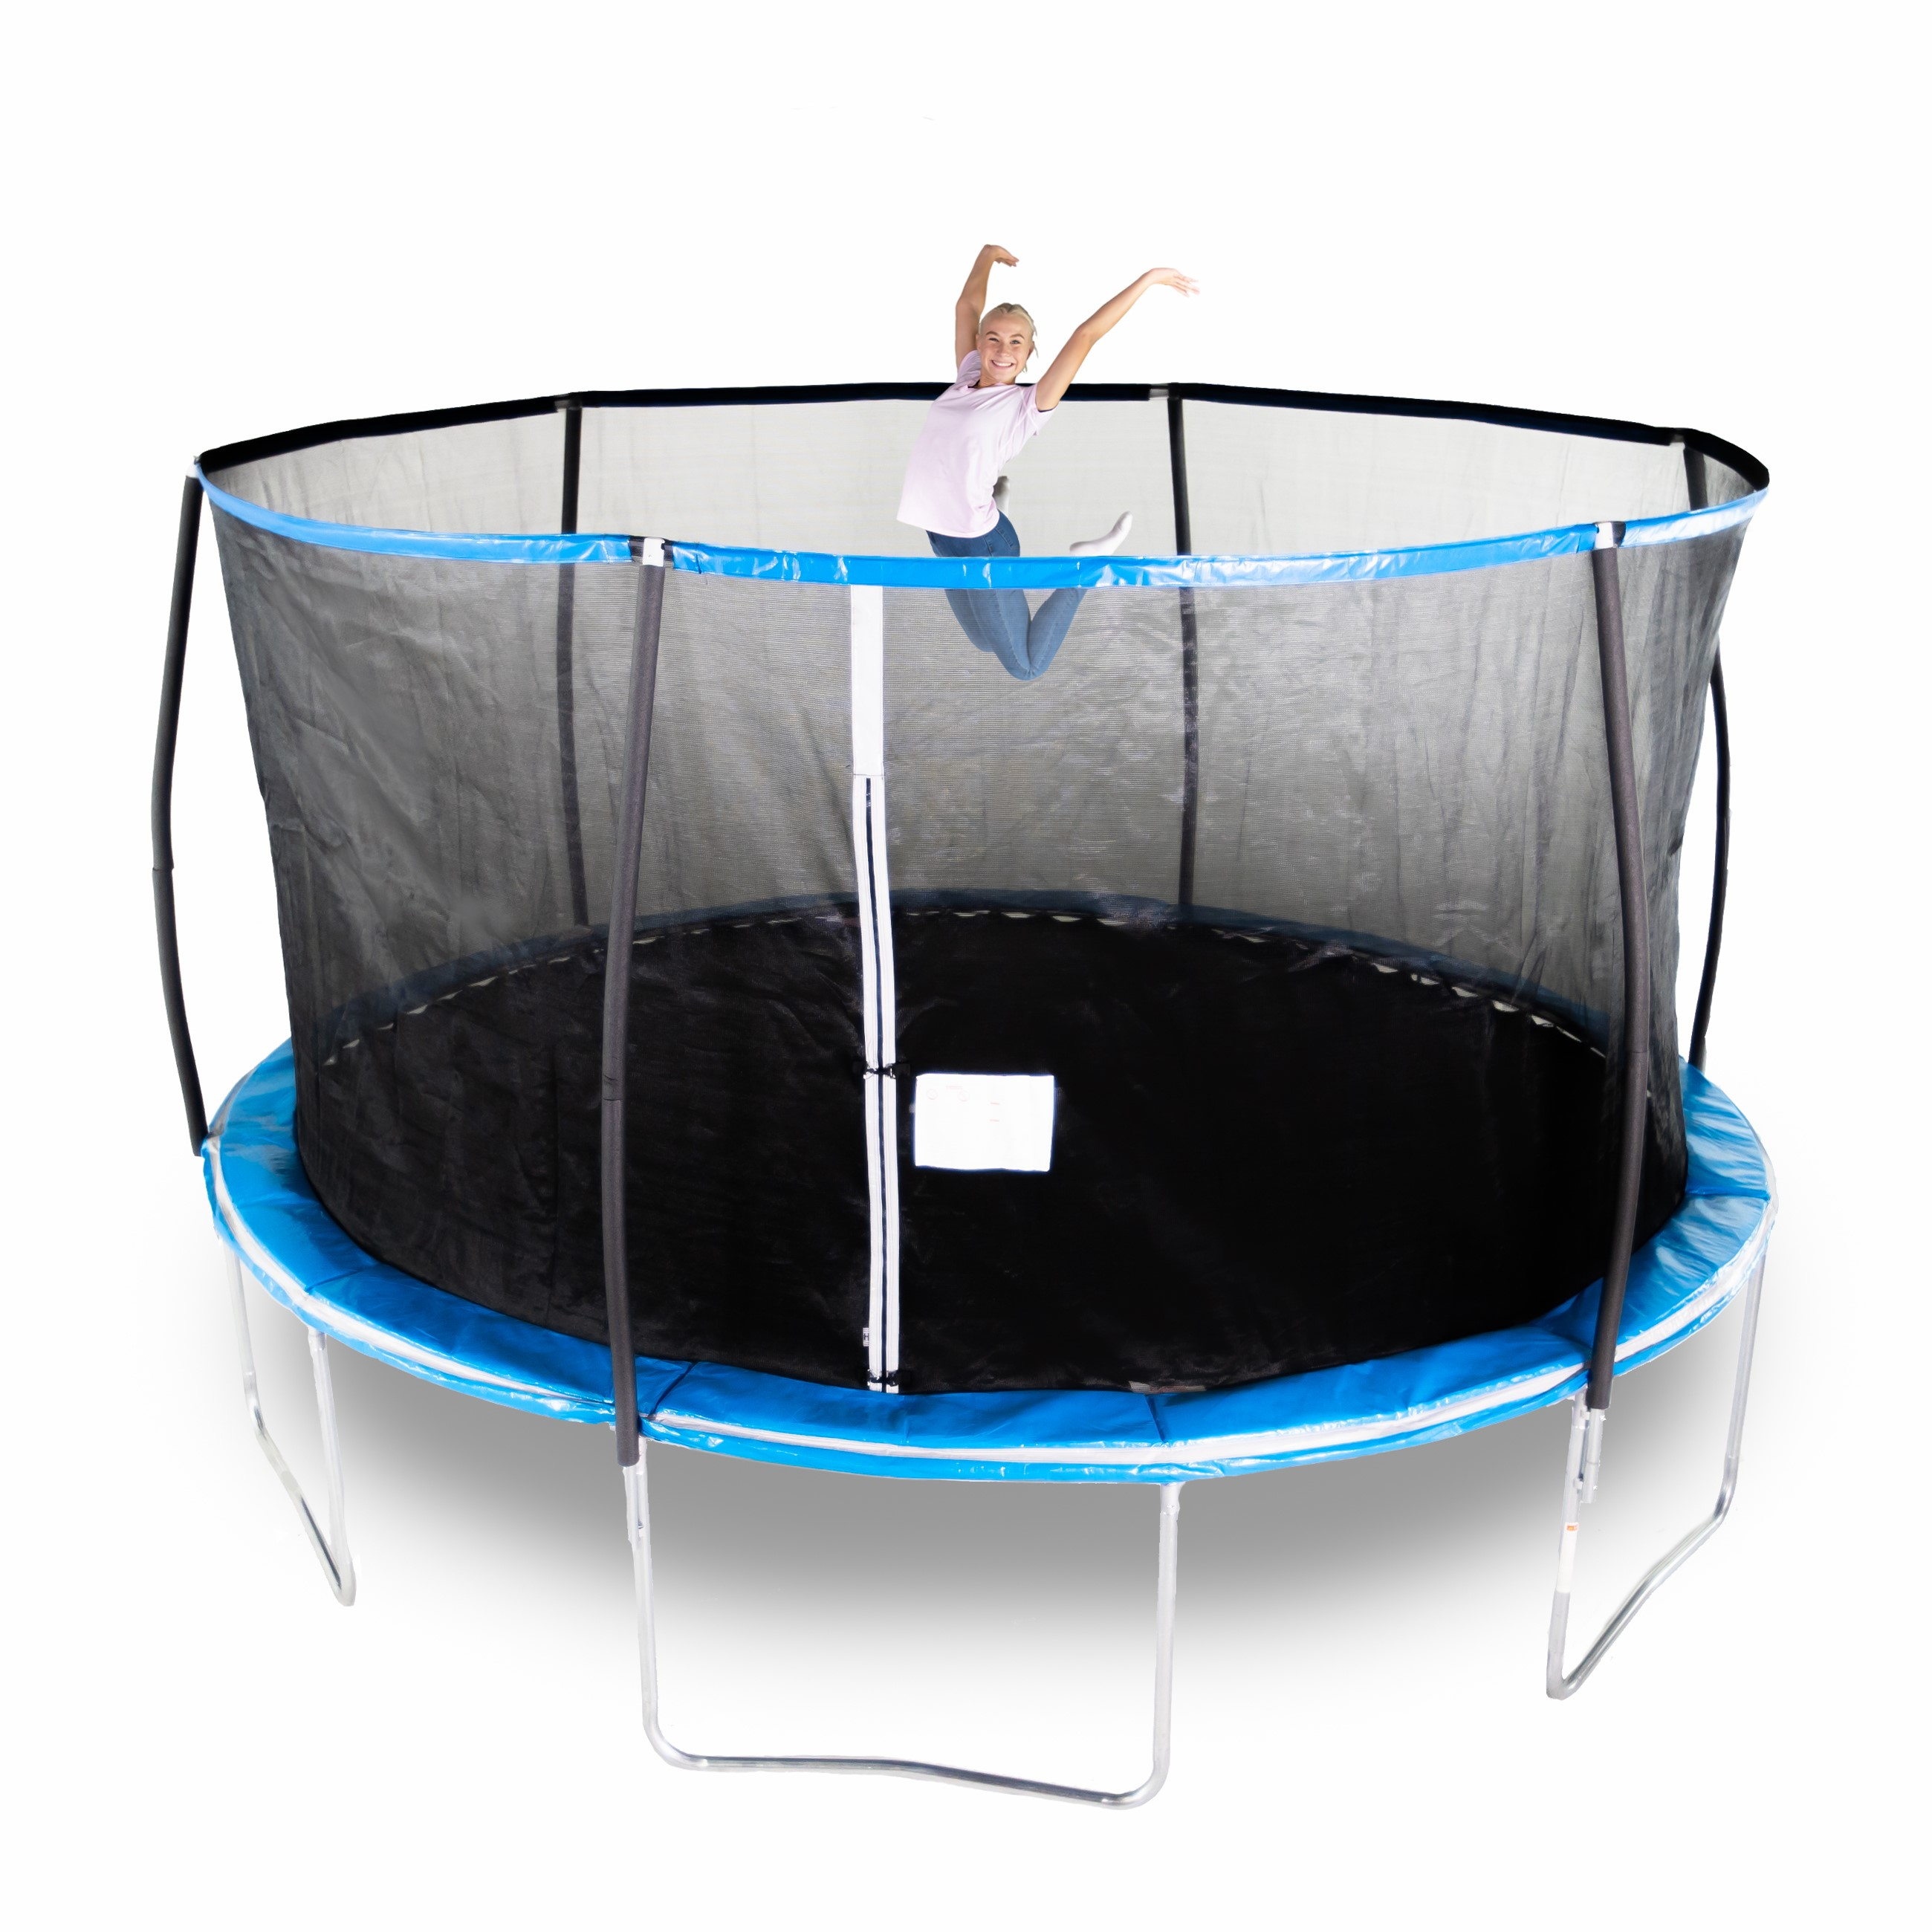 Bounce Pro 14-Foot Trampoline with Enclosure